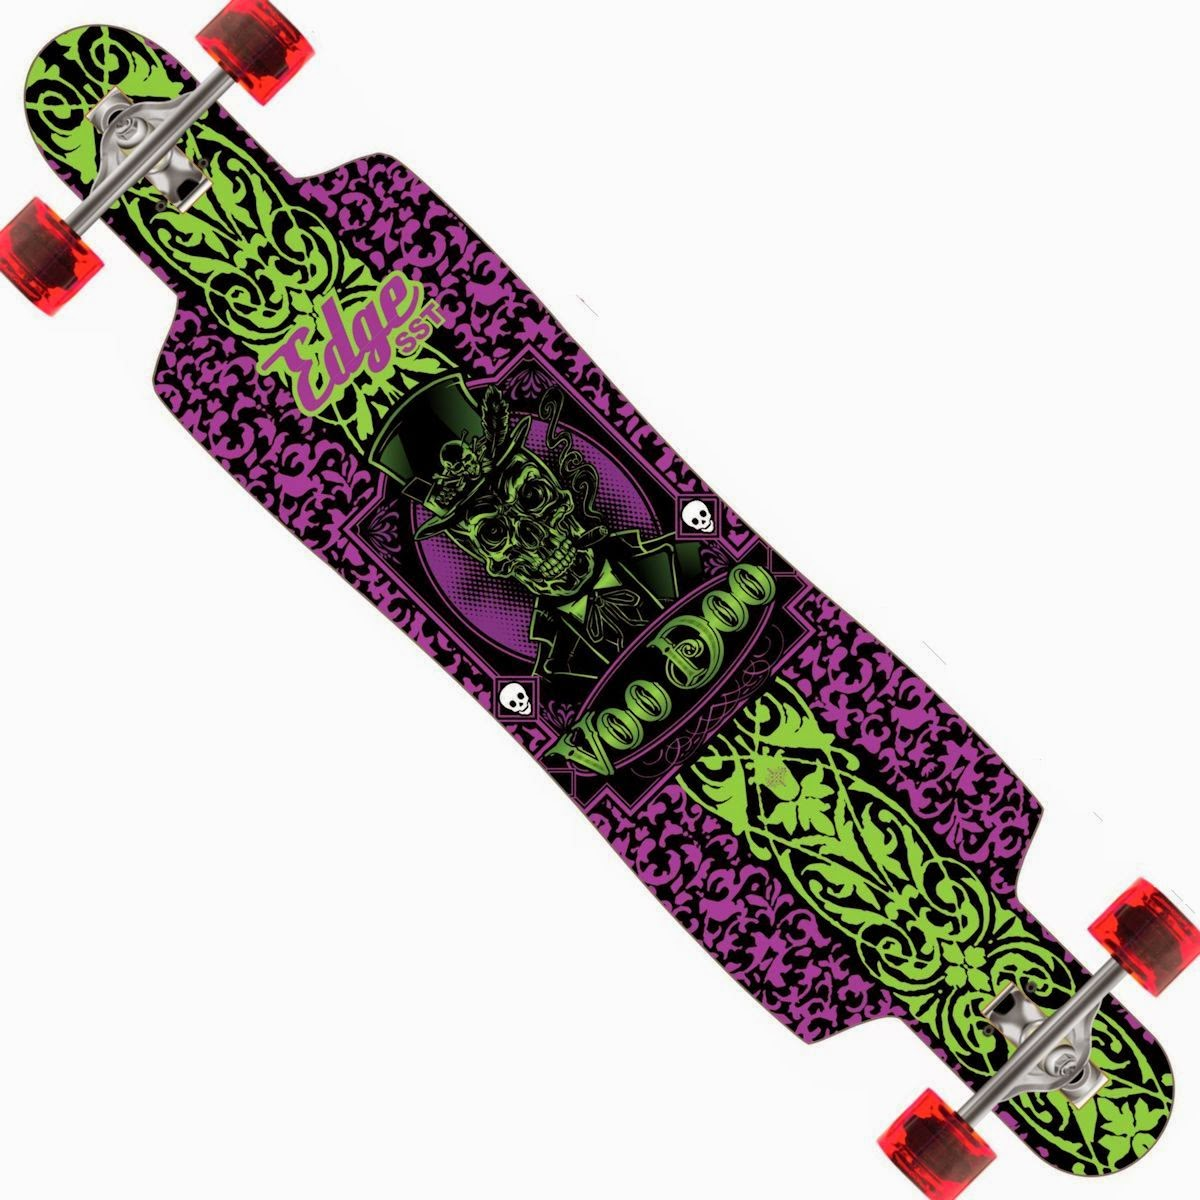 Baron Voodoo Longboard Drop Through Complete 9.5″ x 42.75″